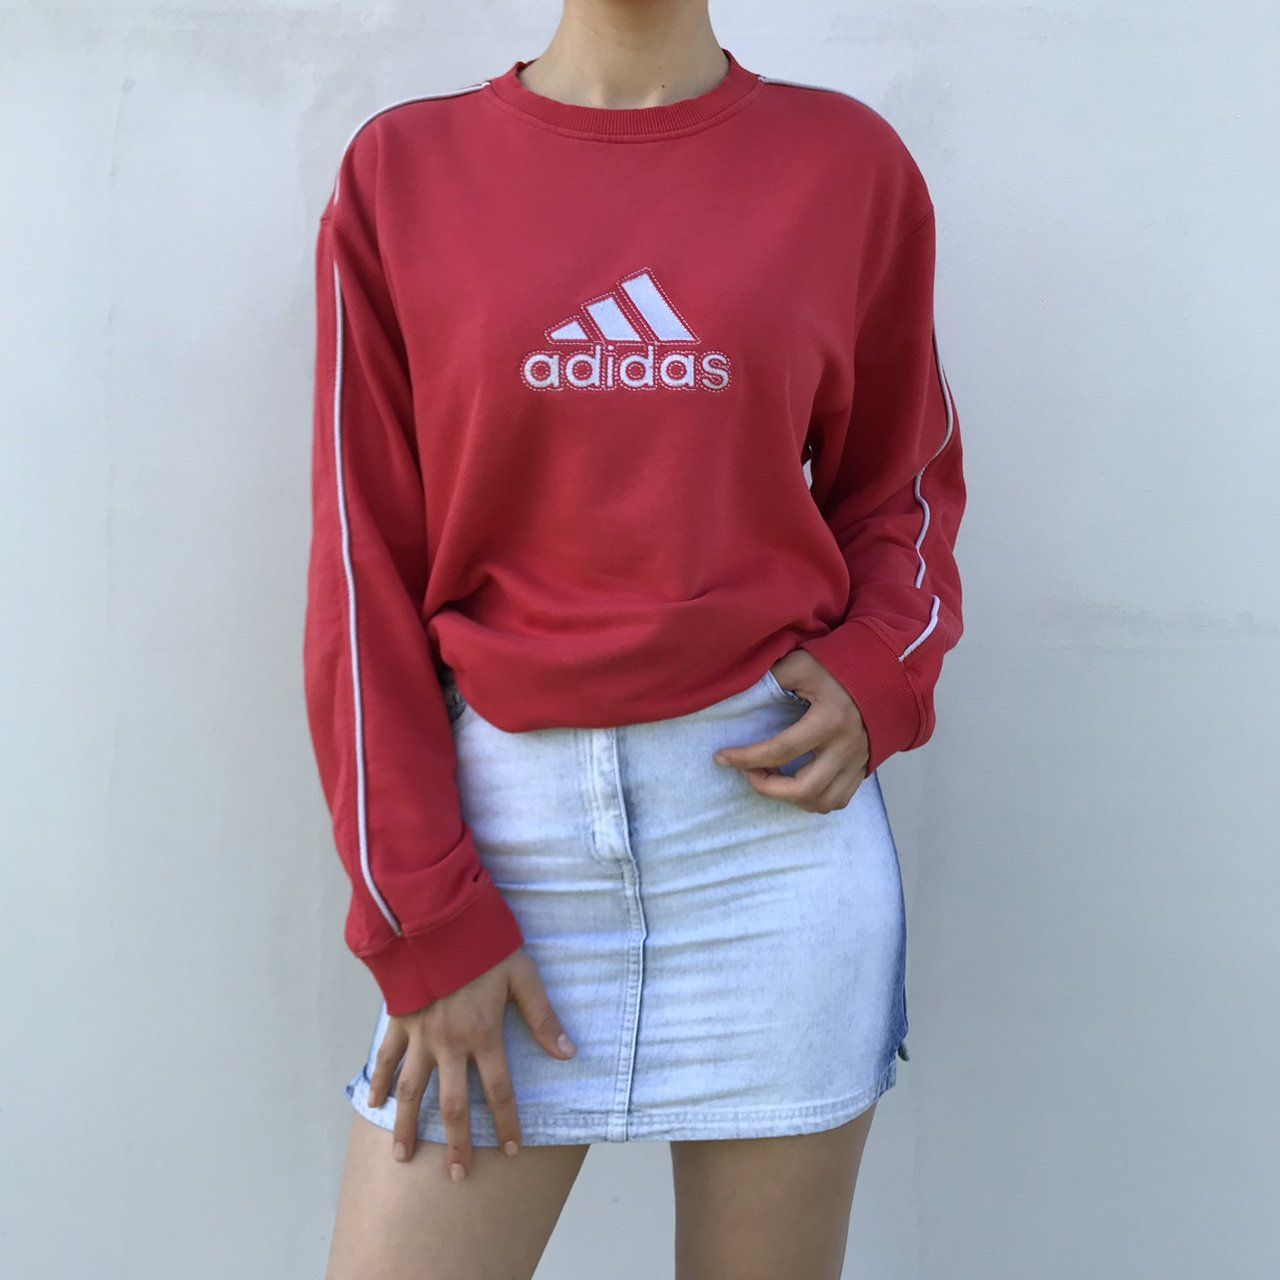 UNISEX VINTAGE ADIDAS SWEATSHIRT 3 STRIPES Size 4042 is